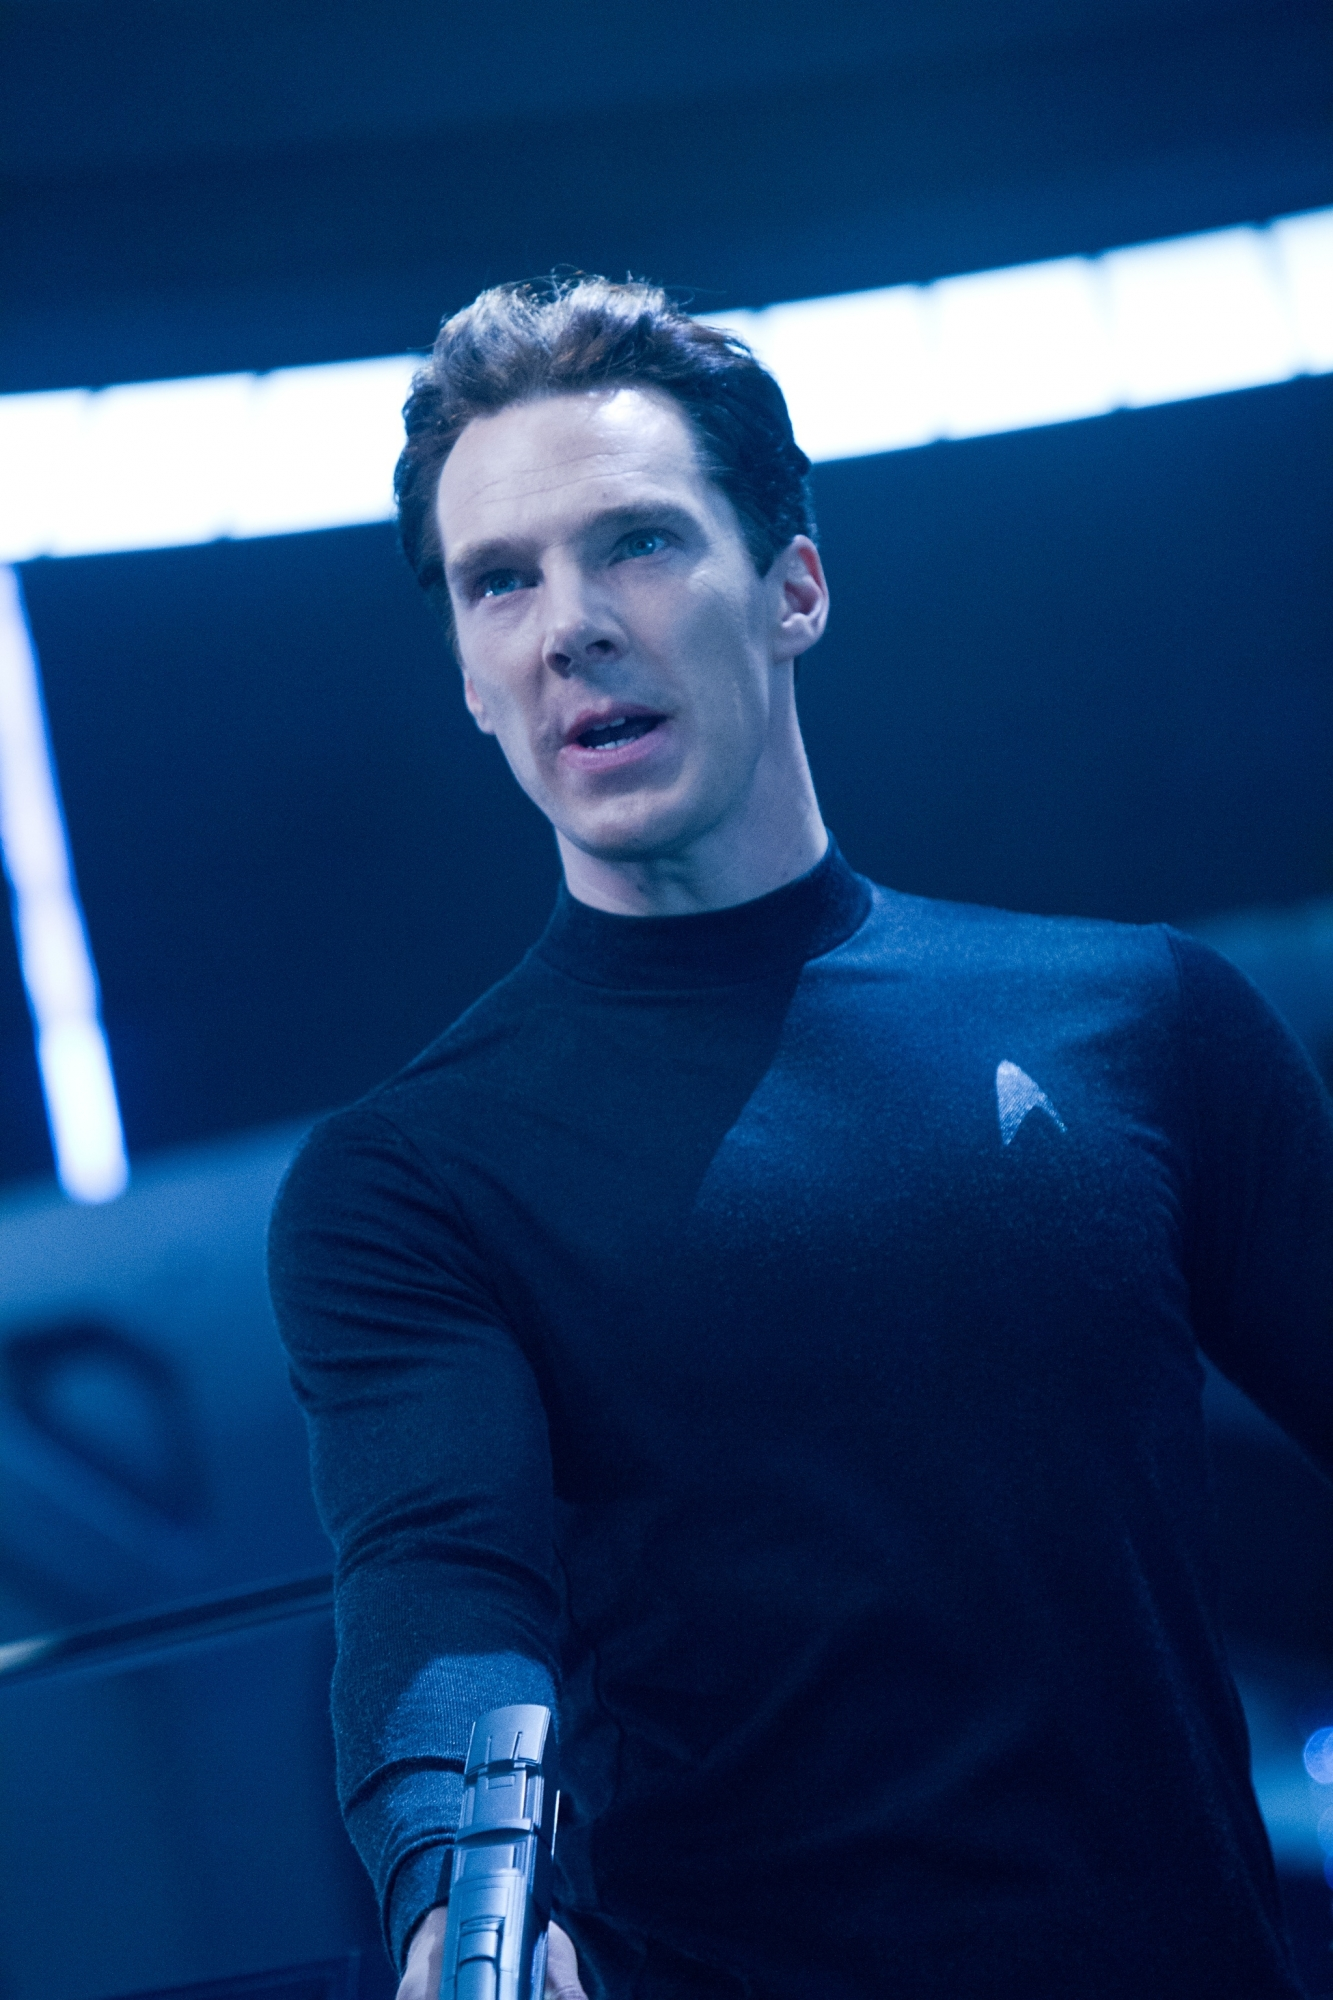 Benedict Cumberbatch in 'Star Trek'